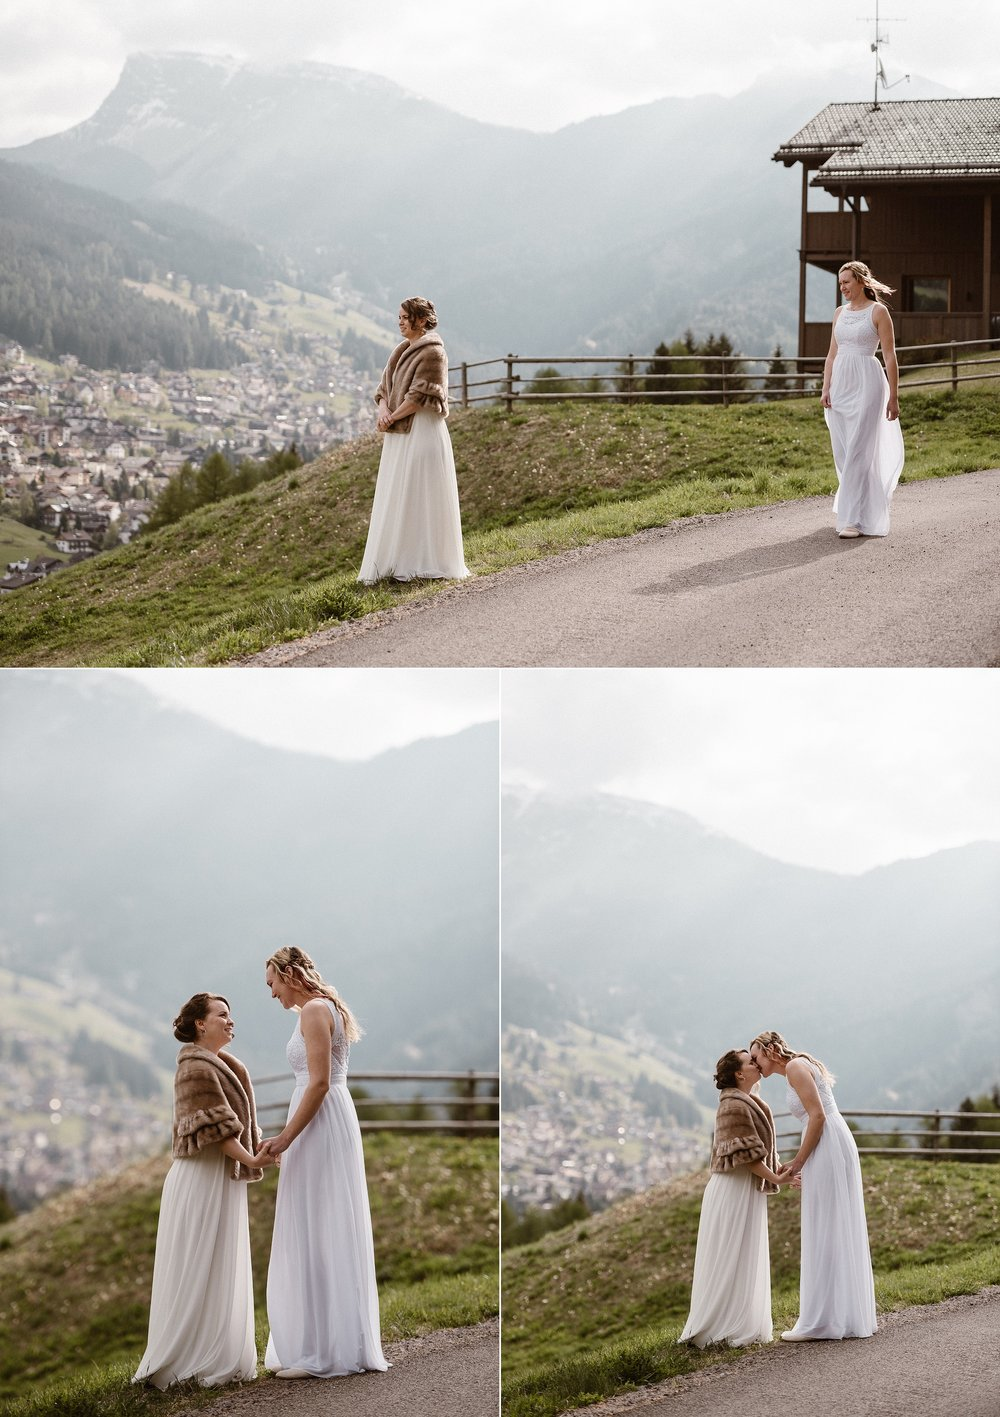 Patiently waiting for her bride and taking in the grand view of South Tryol in Northern Italy had to offer, she found her nerves calm when she would have been so anxious on her on her wedding day. Photo by Maddie Mae Photography.